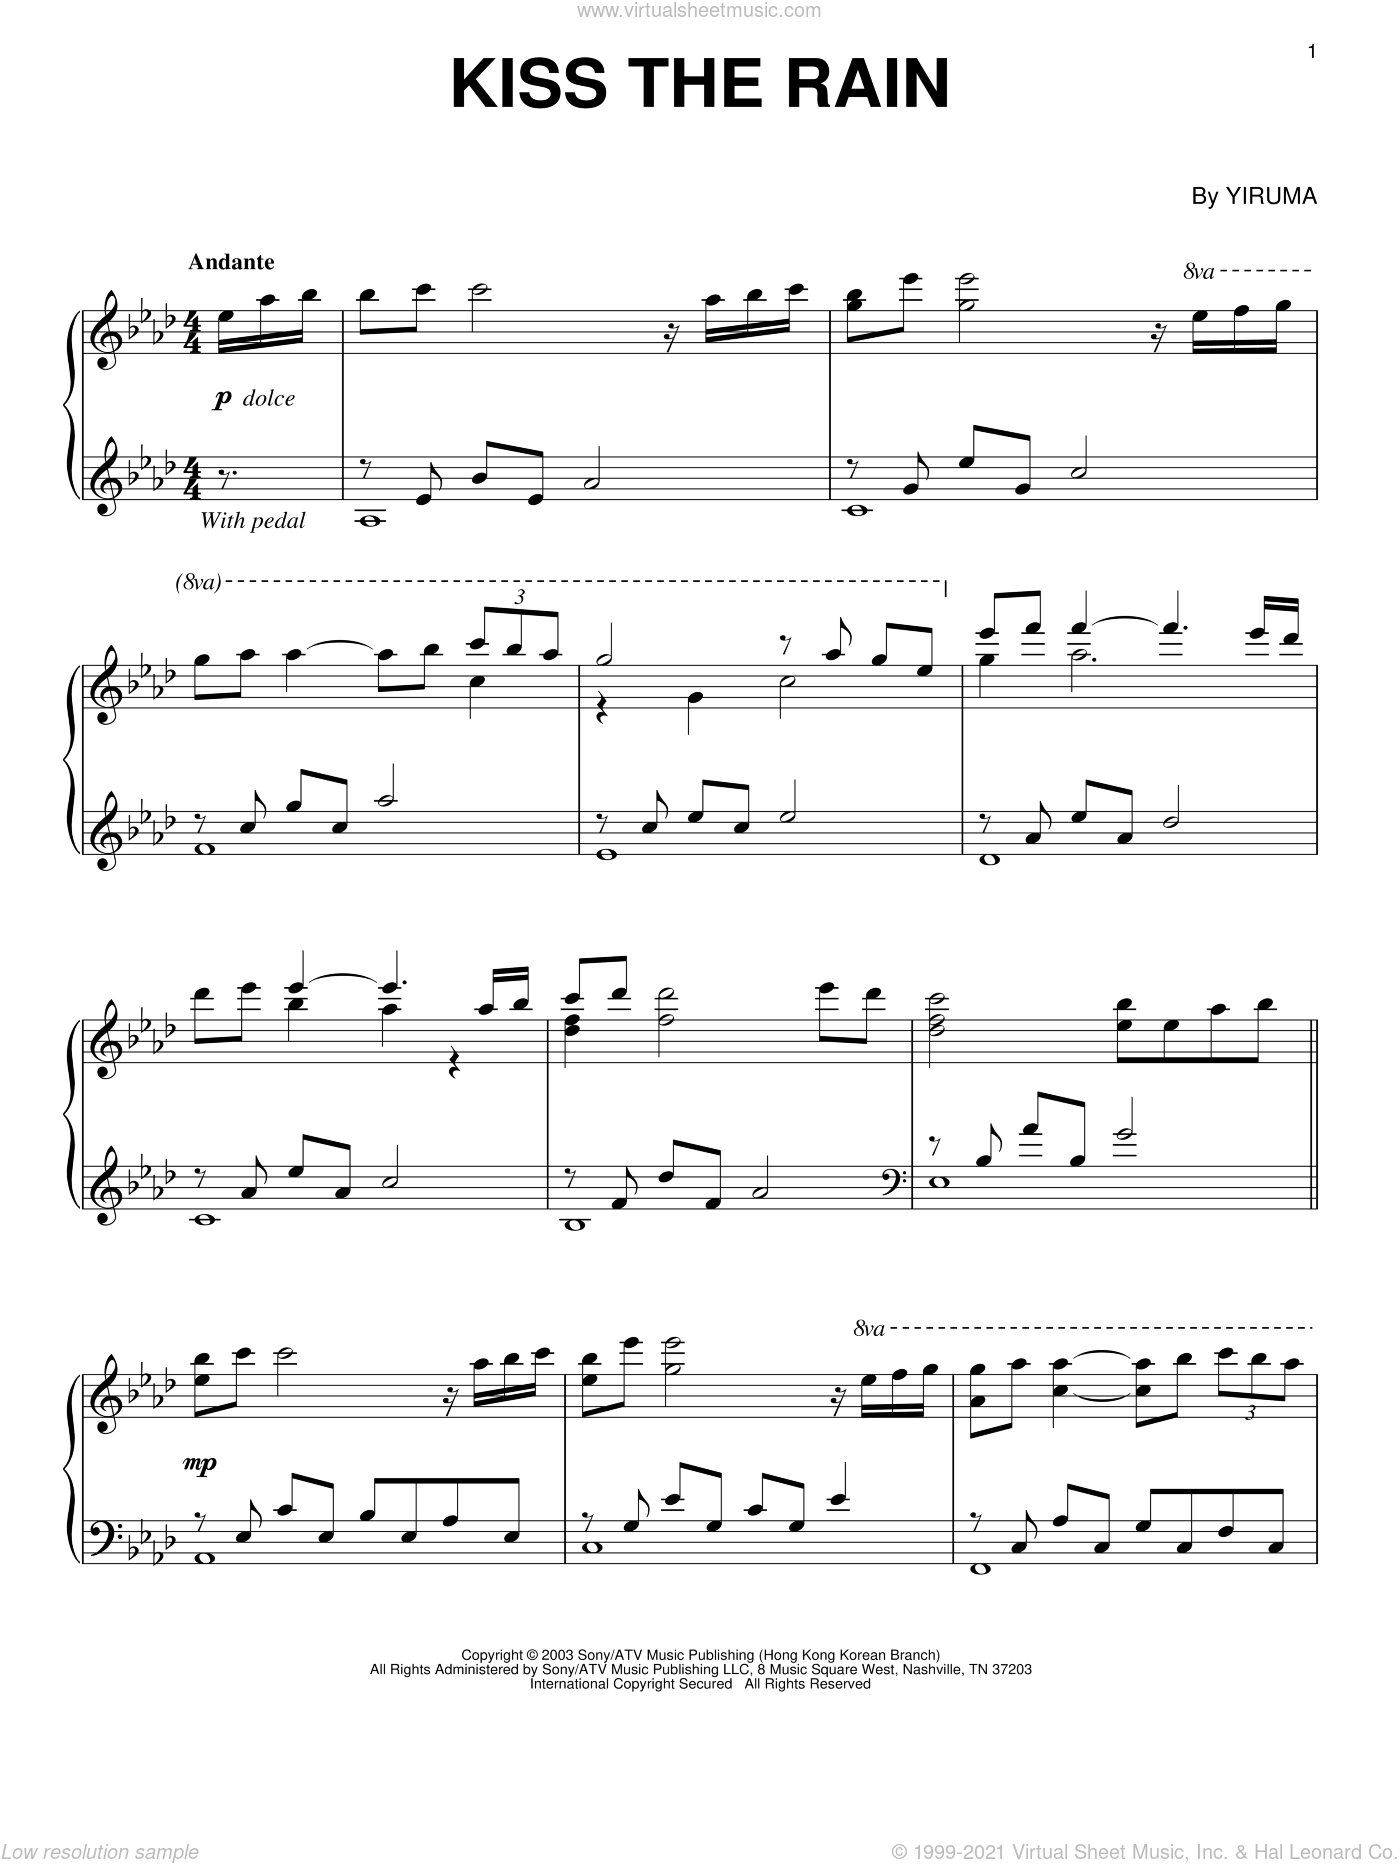 Kiss The Rain sheet music for piano solo by Yiruma. Score Image Preview.